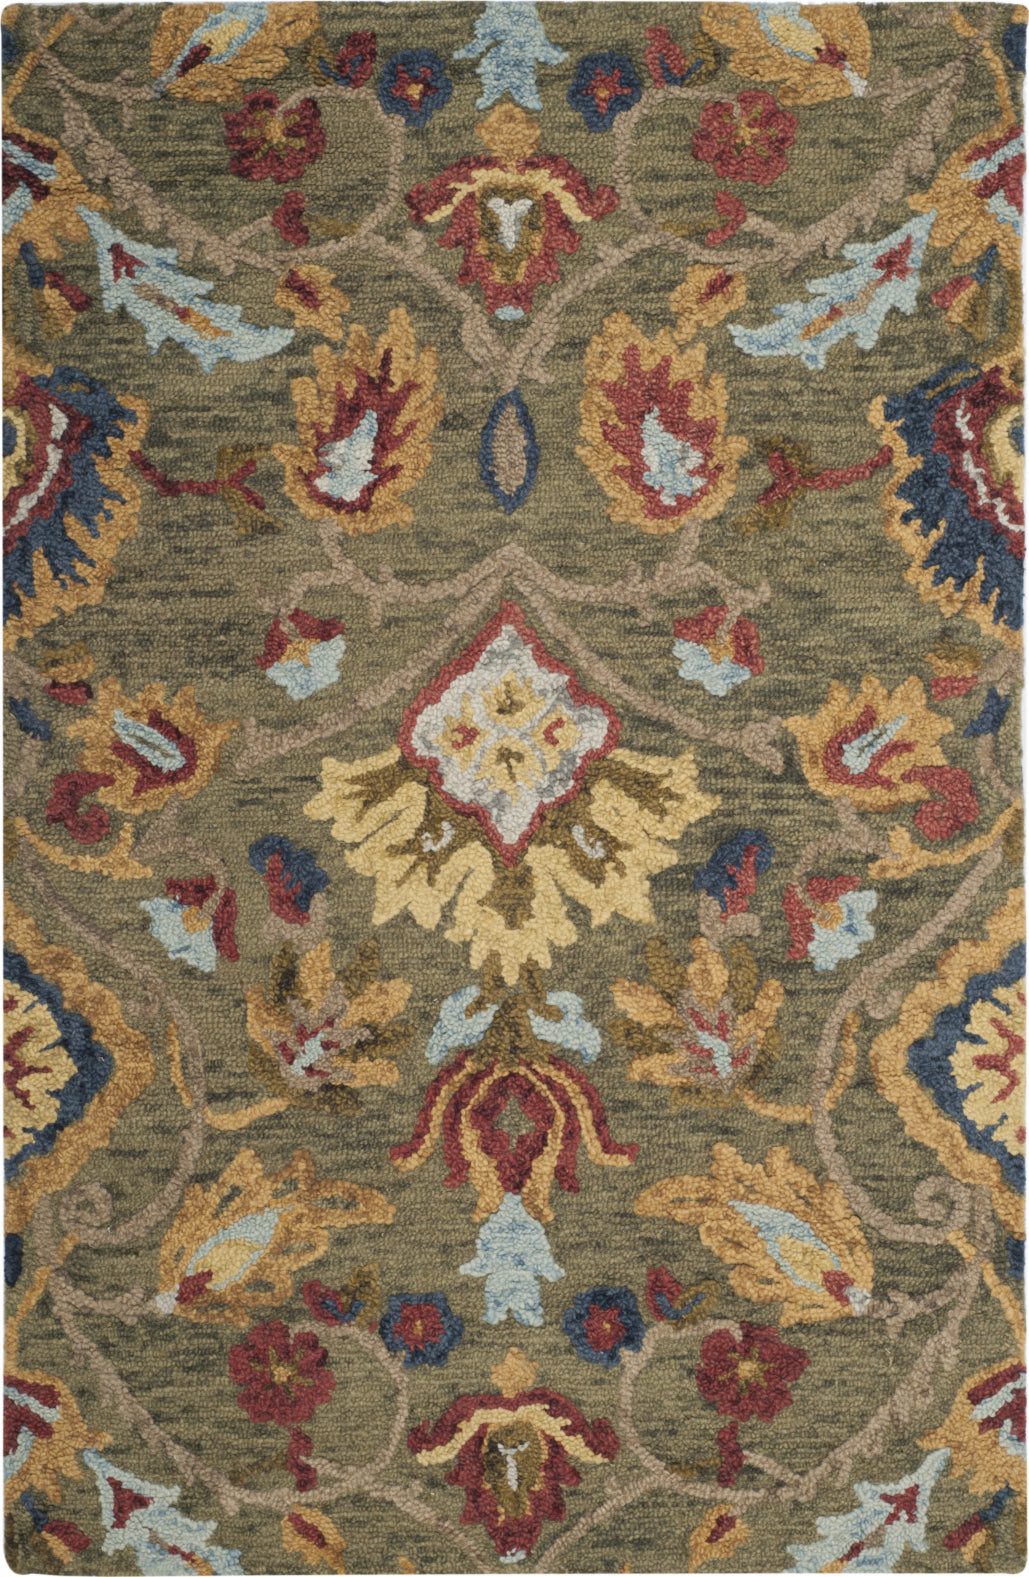 Safavieh Blossom 402 Green/Multi Area Rug main image